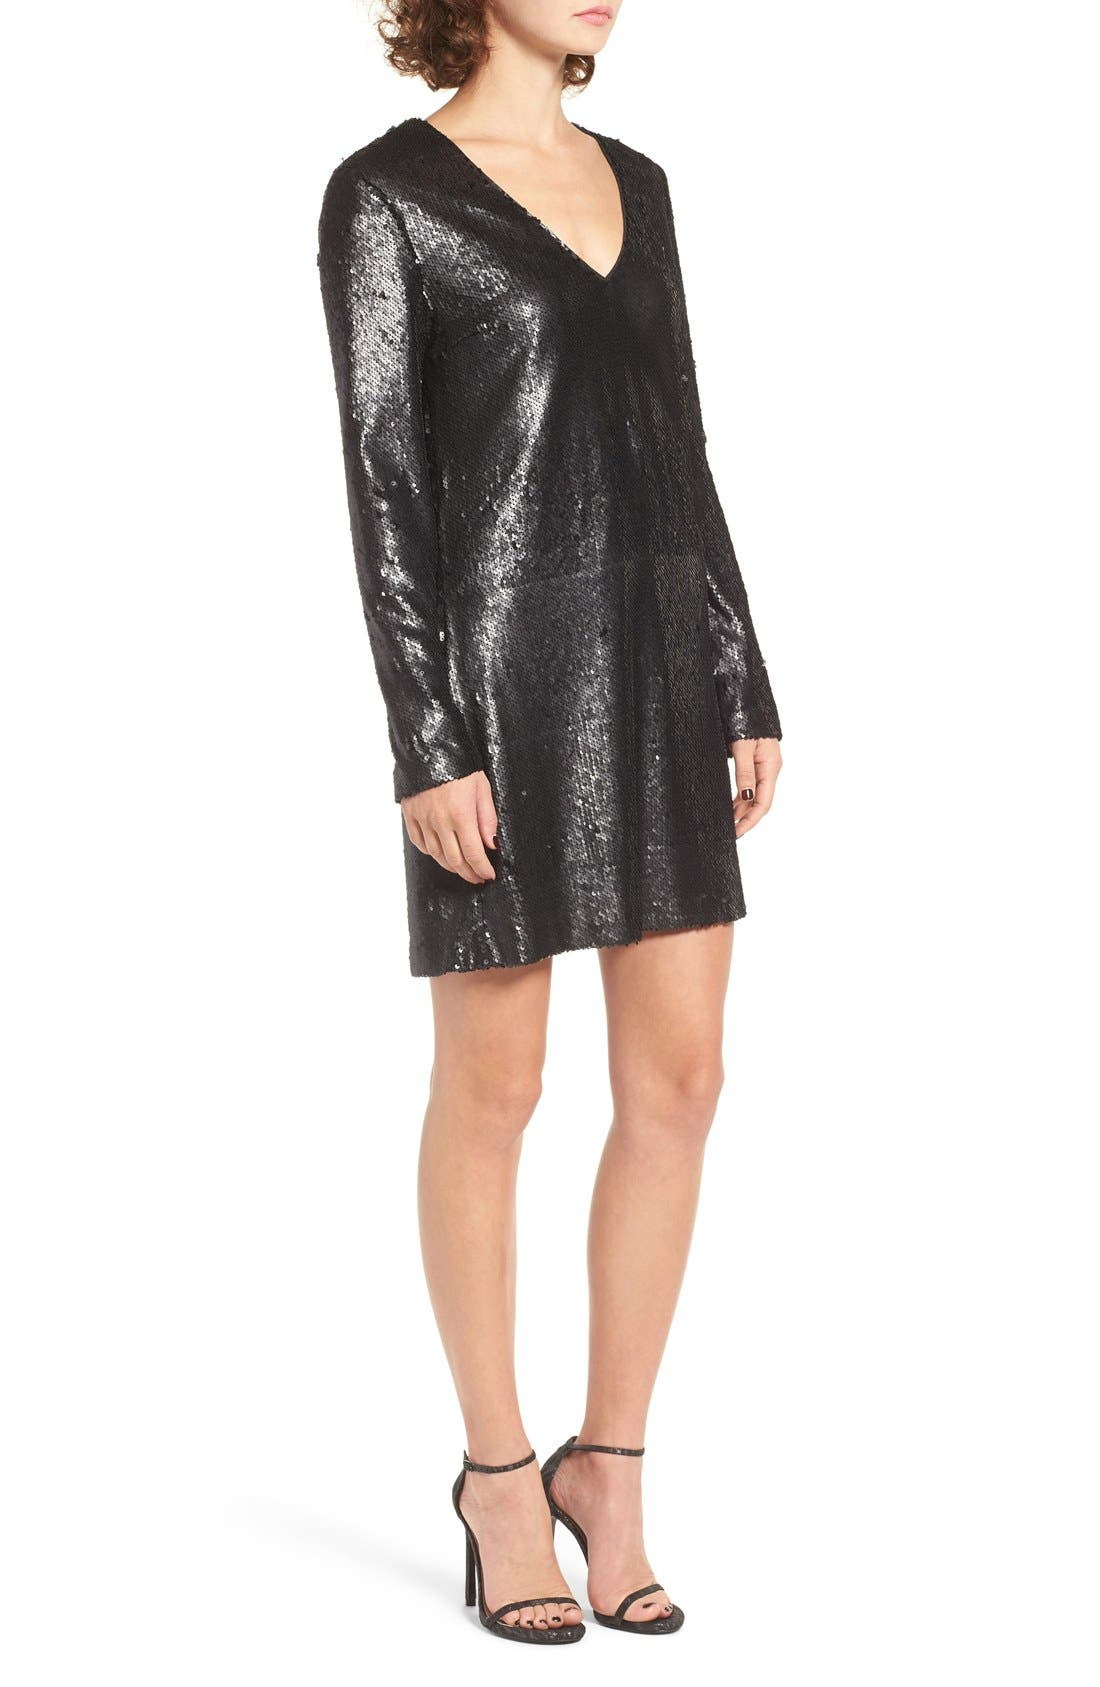 Skyline Sequin Dress,                             Alternate thumbnail 3, color,                             001